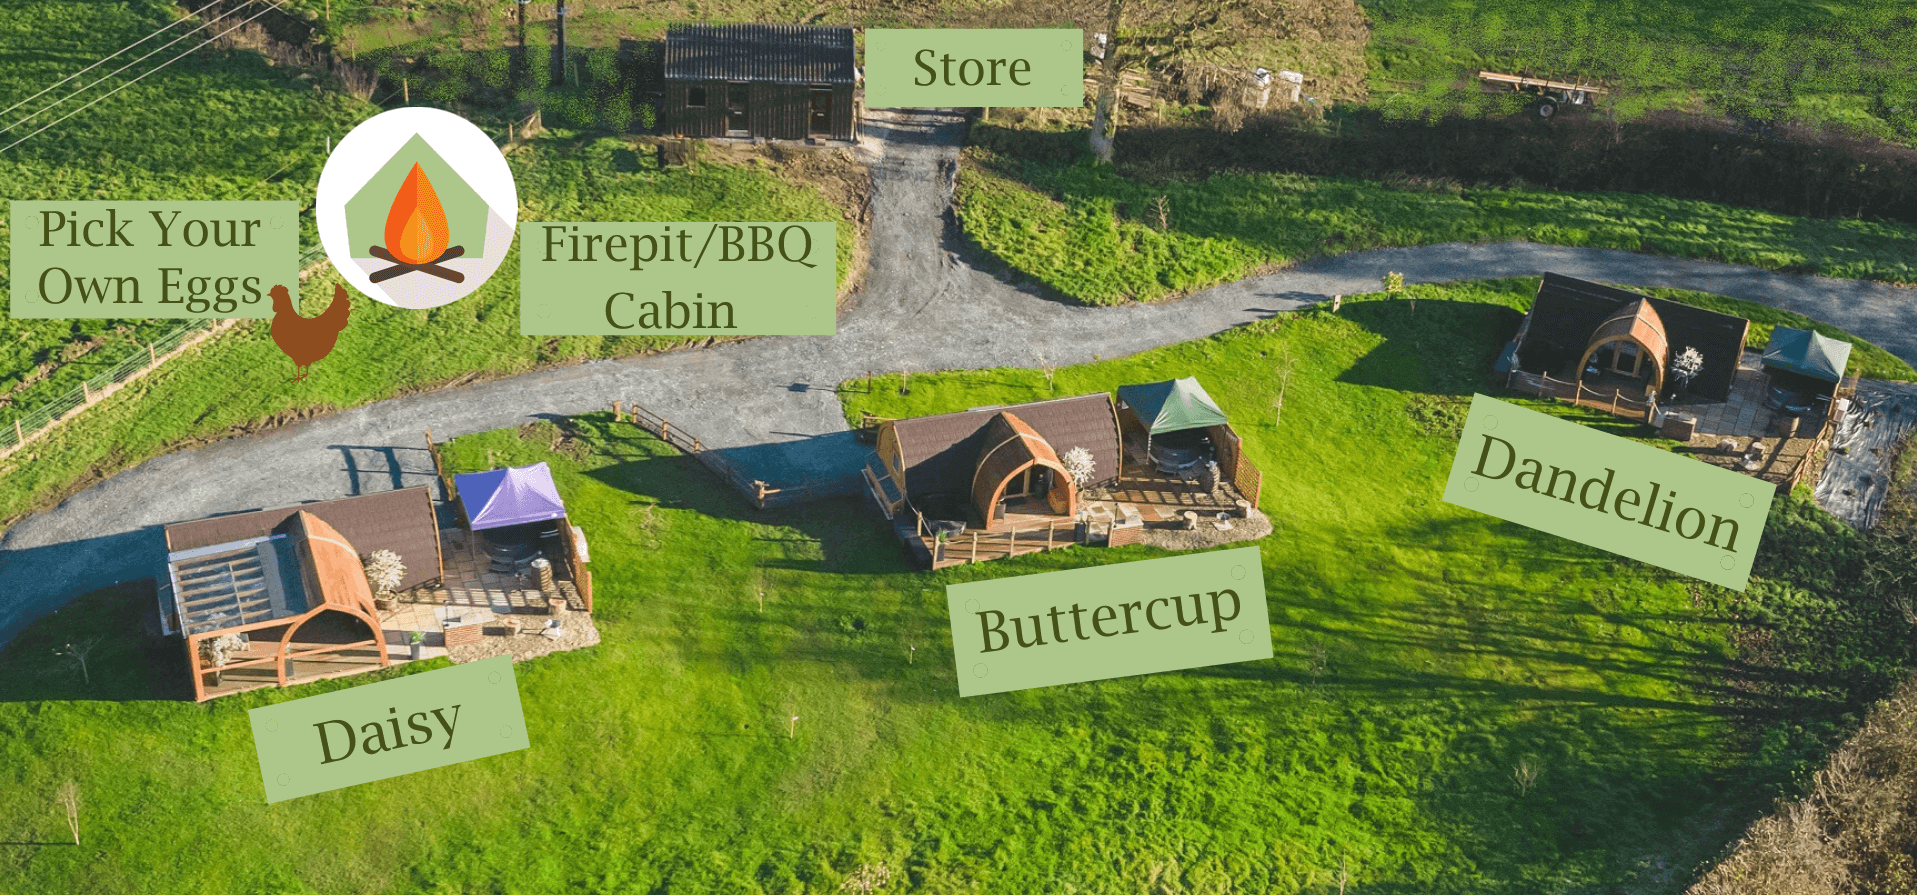 Hedgerow luxury glamping site map